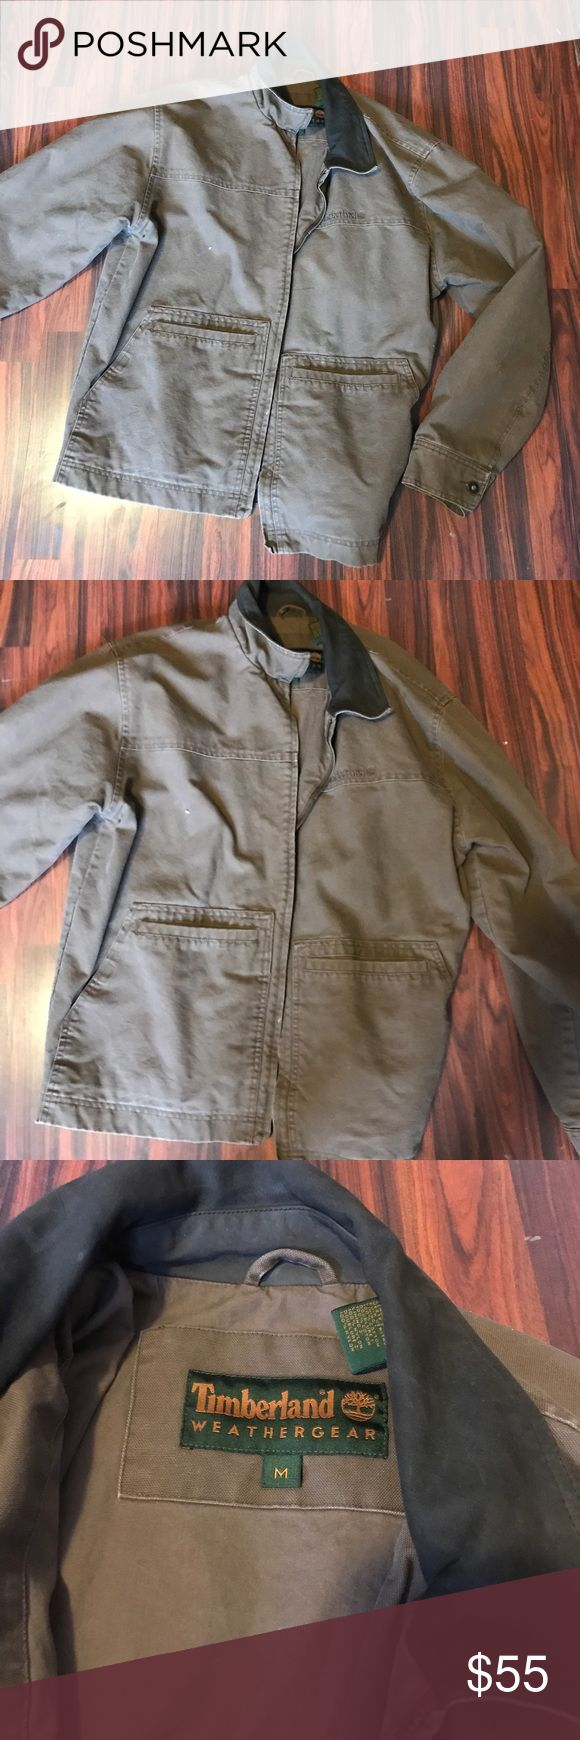 Timberland Coat Timberland Men's coat In good condition Size medium Timberland Jackets & Coats